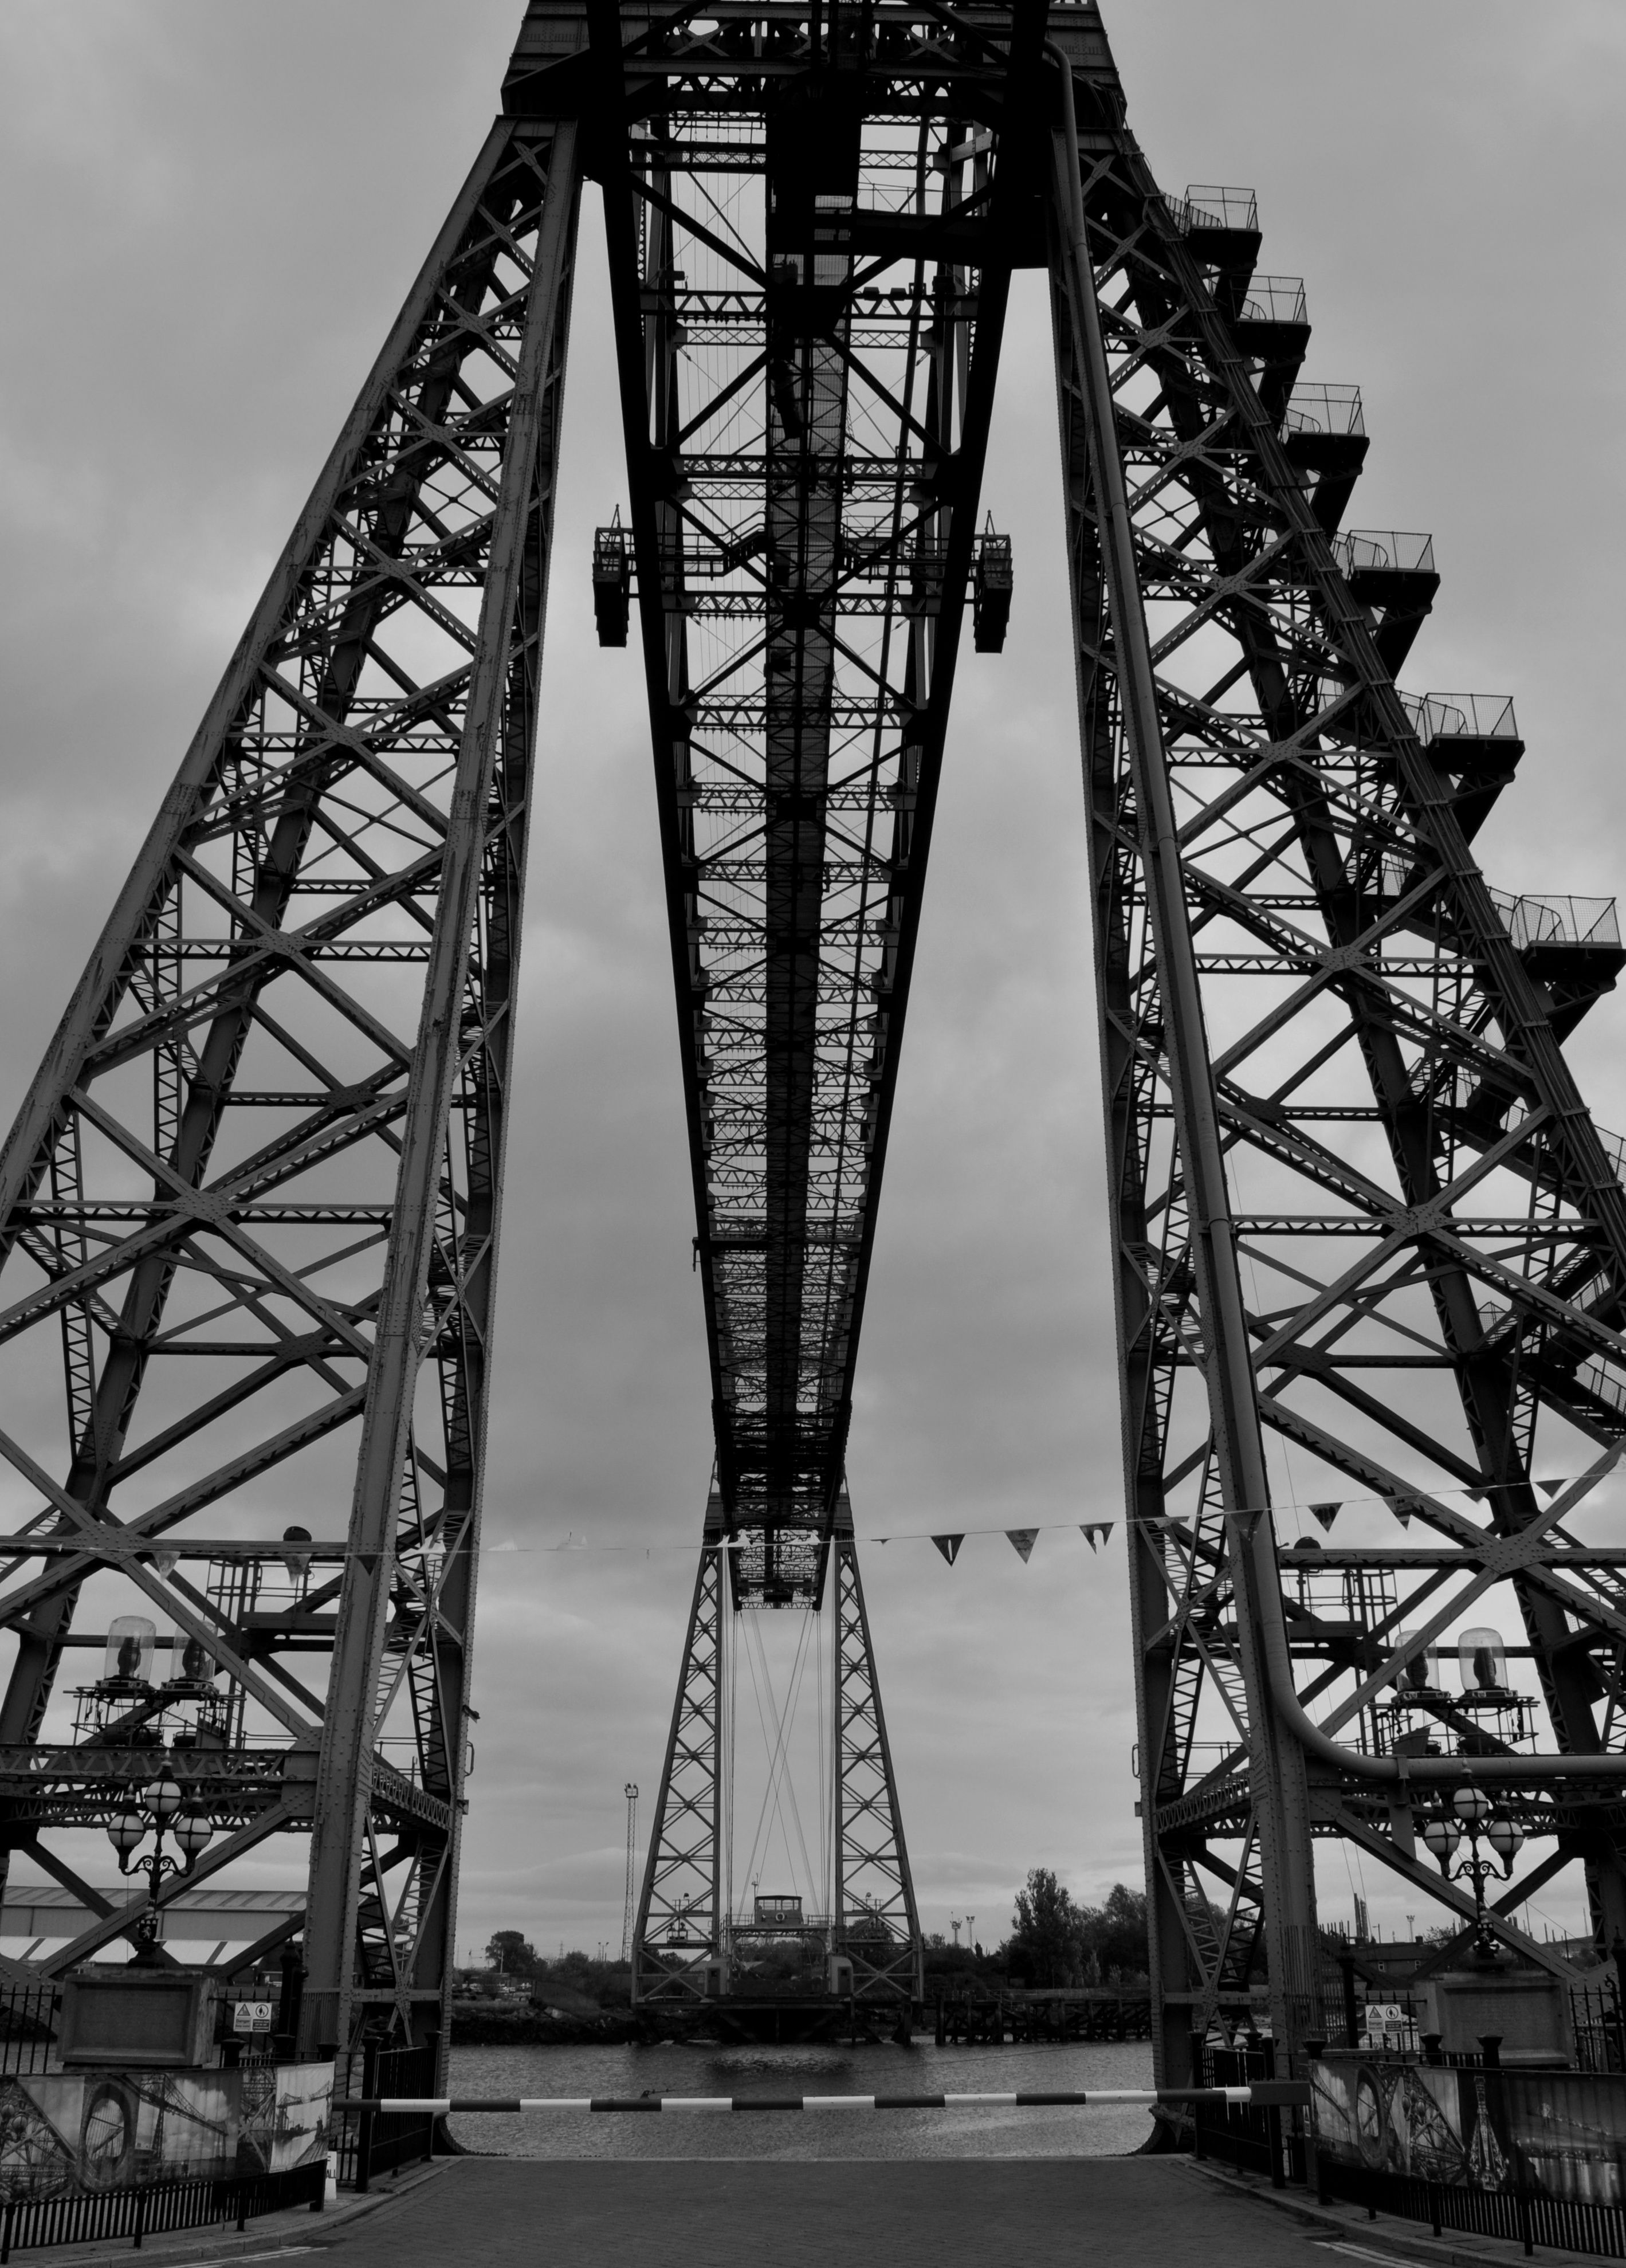 Middlesbrough's famous Transporter Bridge, opened in 1911